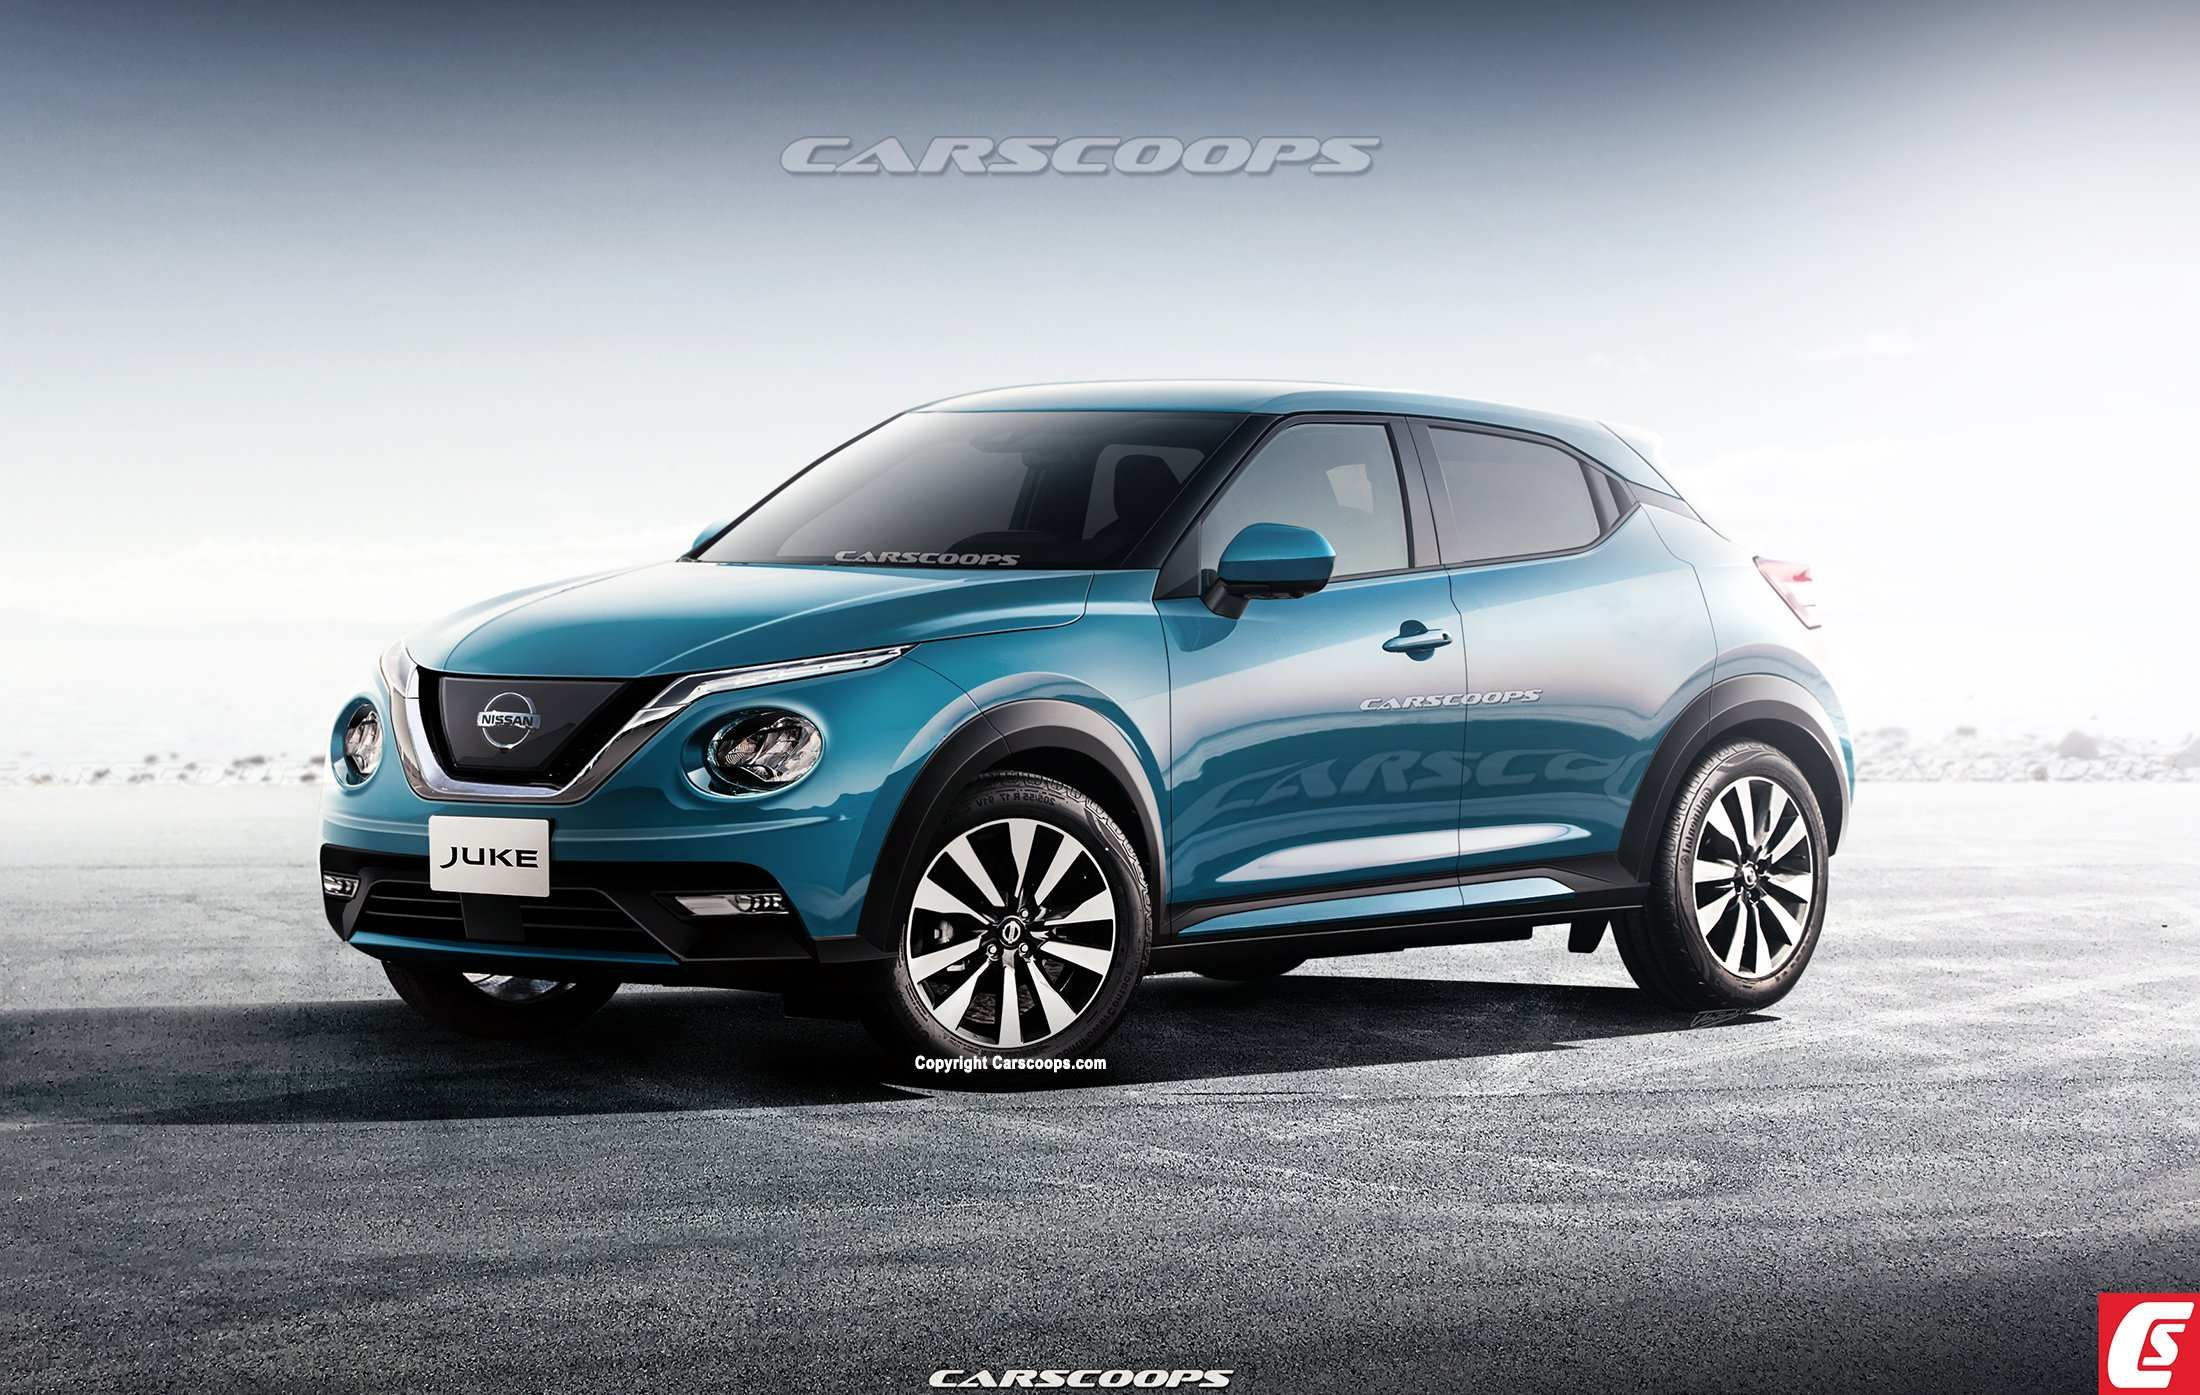 78 A Nissan Juke 2020 Dimensions Configurations